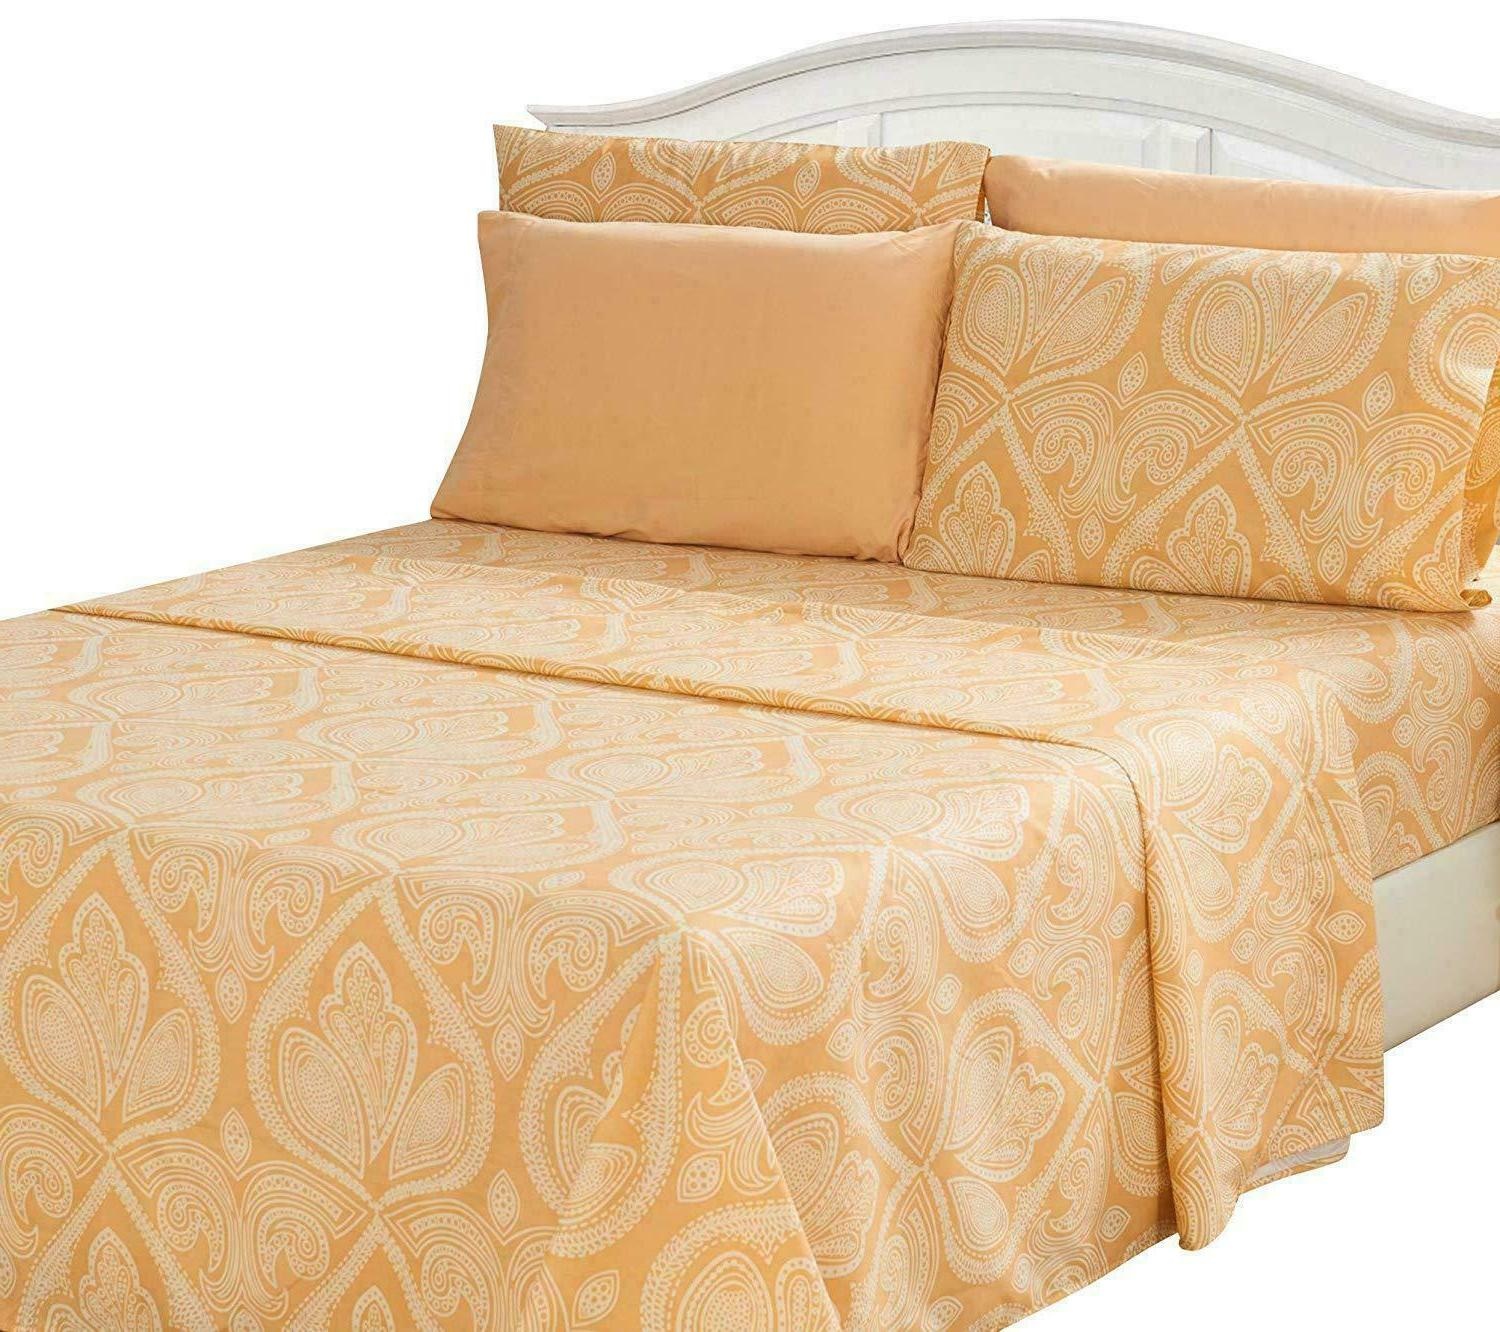 Deep Piece Bed Series Sheets